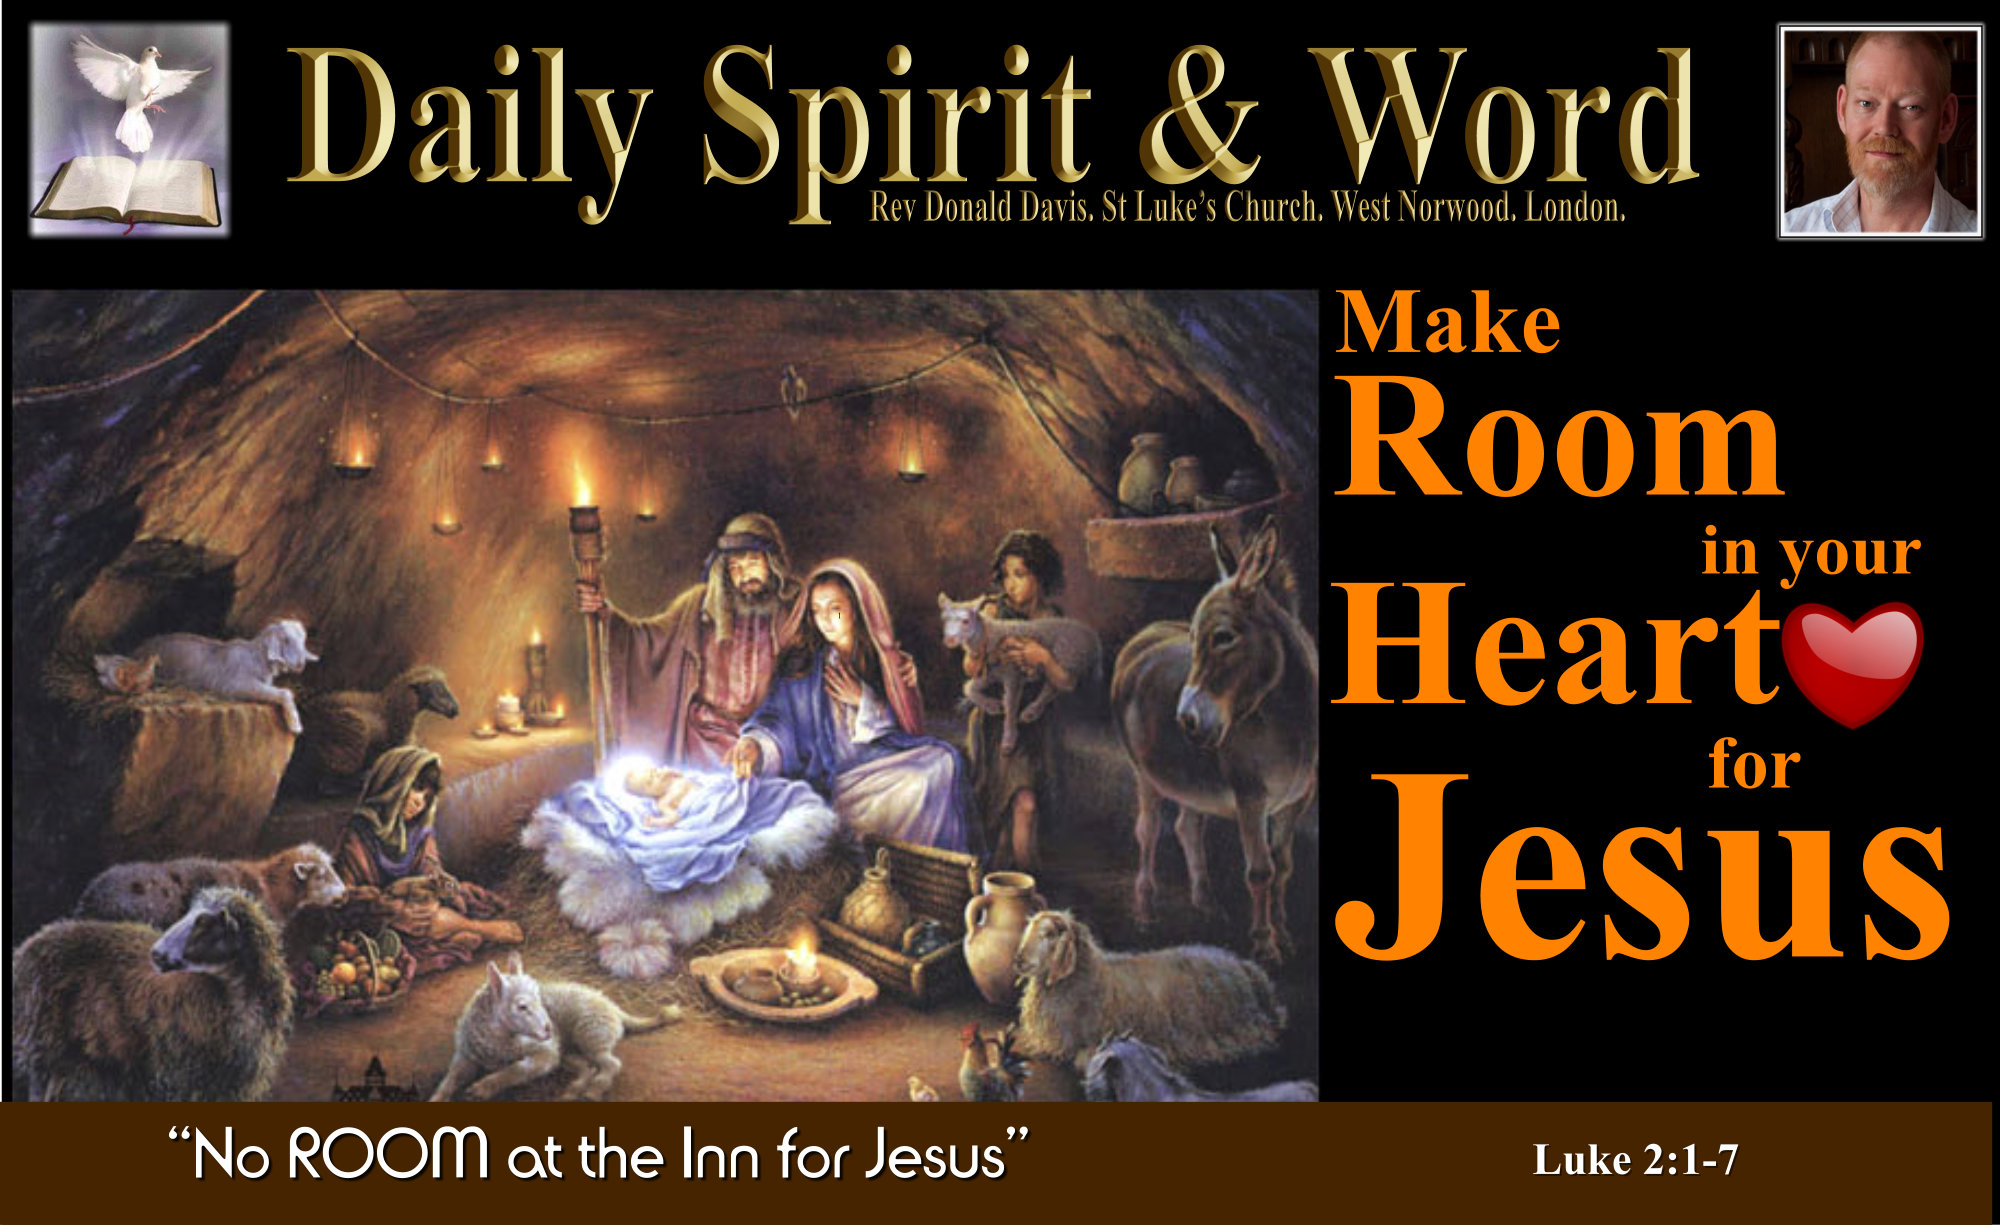 Make Room In Your Heart For Jesus This Christmas – Daily Spirit and Word